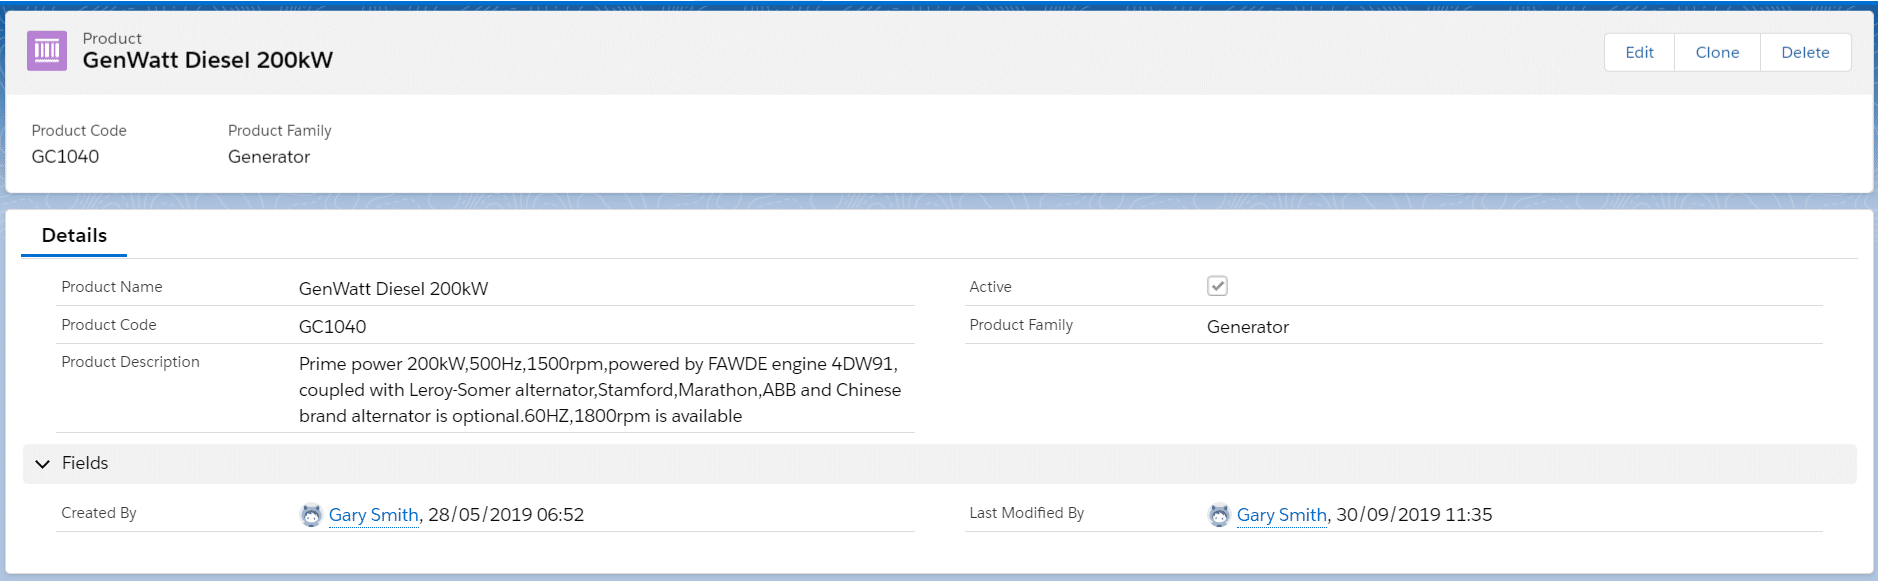 The Code and Description fields are optional fields in Salesforce.